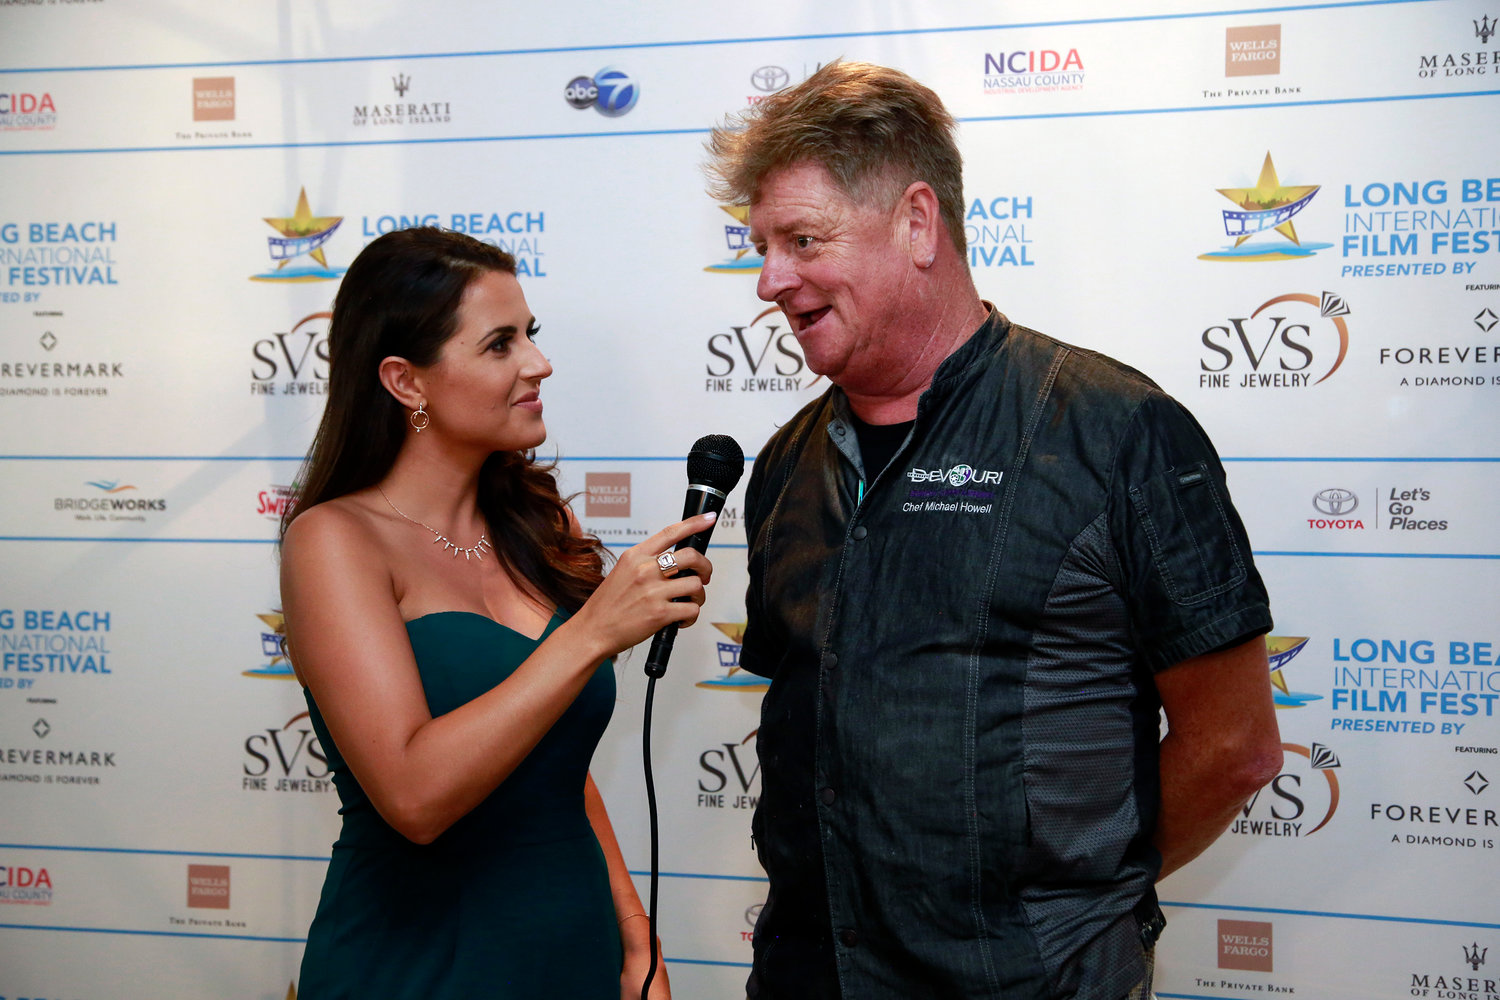 Long Beach Film Festival host, Marissa Hunter, above, interviewed chef Michael Howell of Devour !, The Food Film Fest.